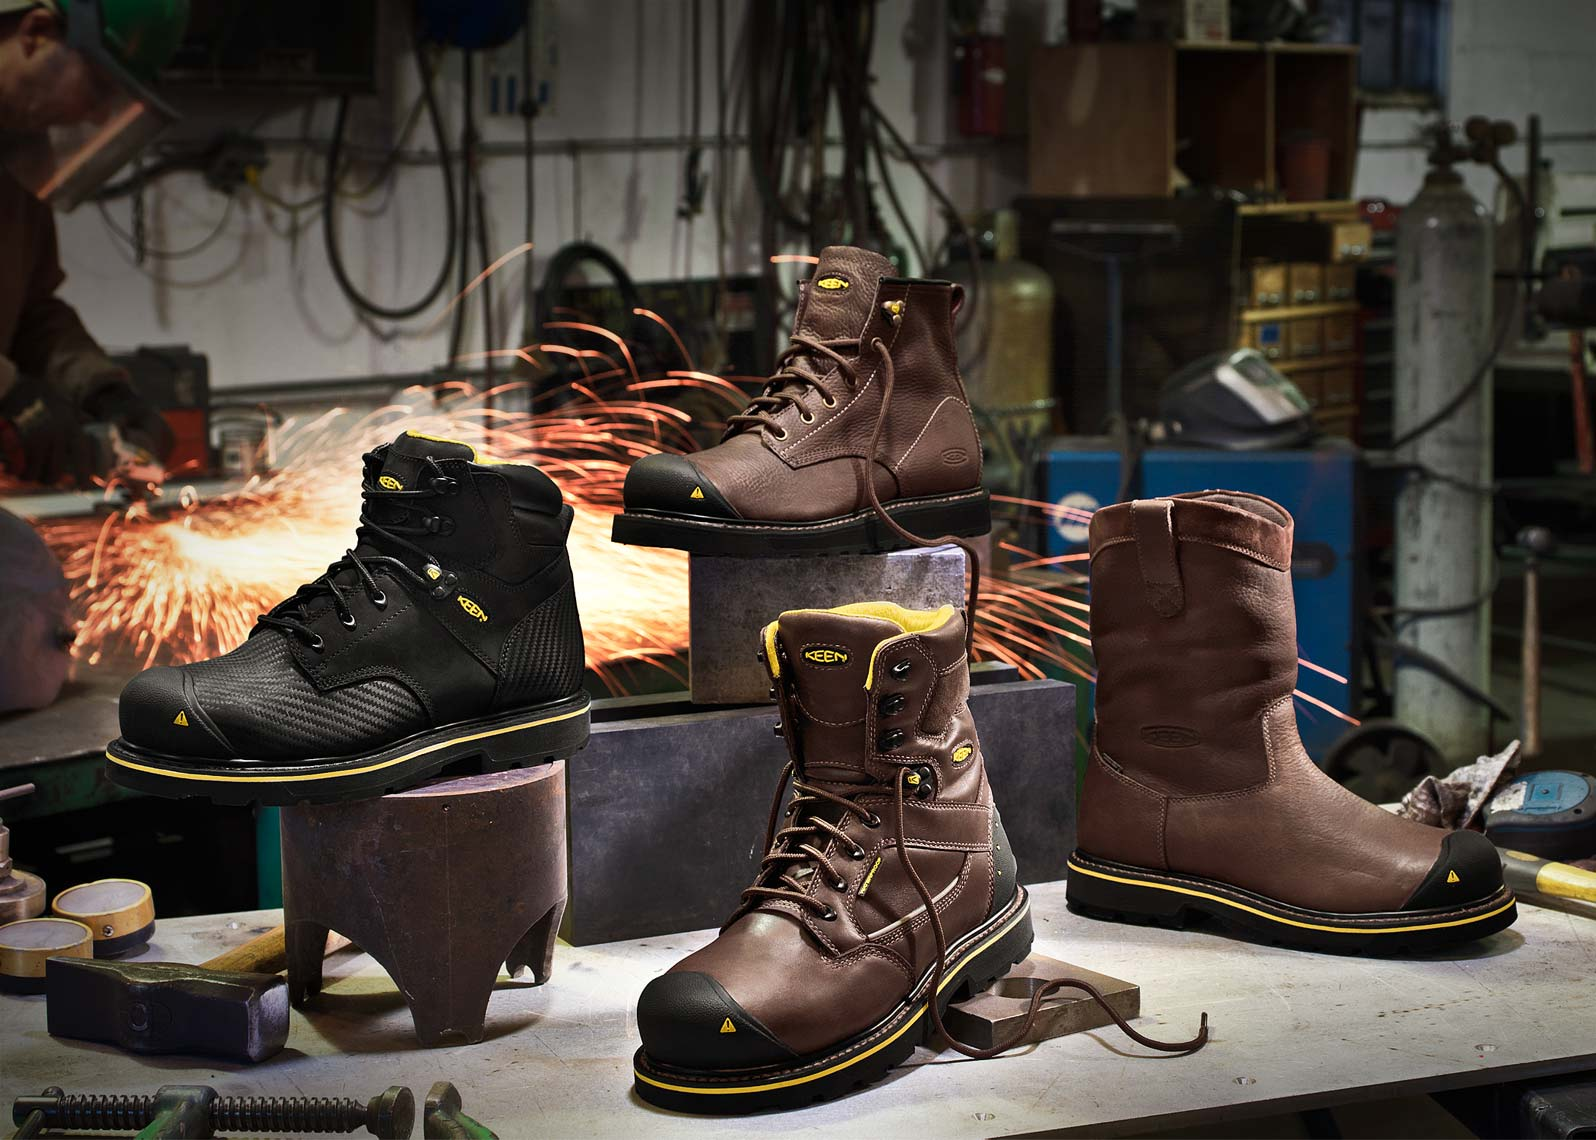 keen boots at welding shop sparks brown